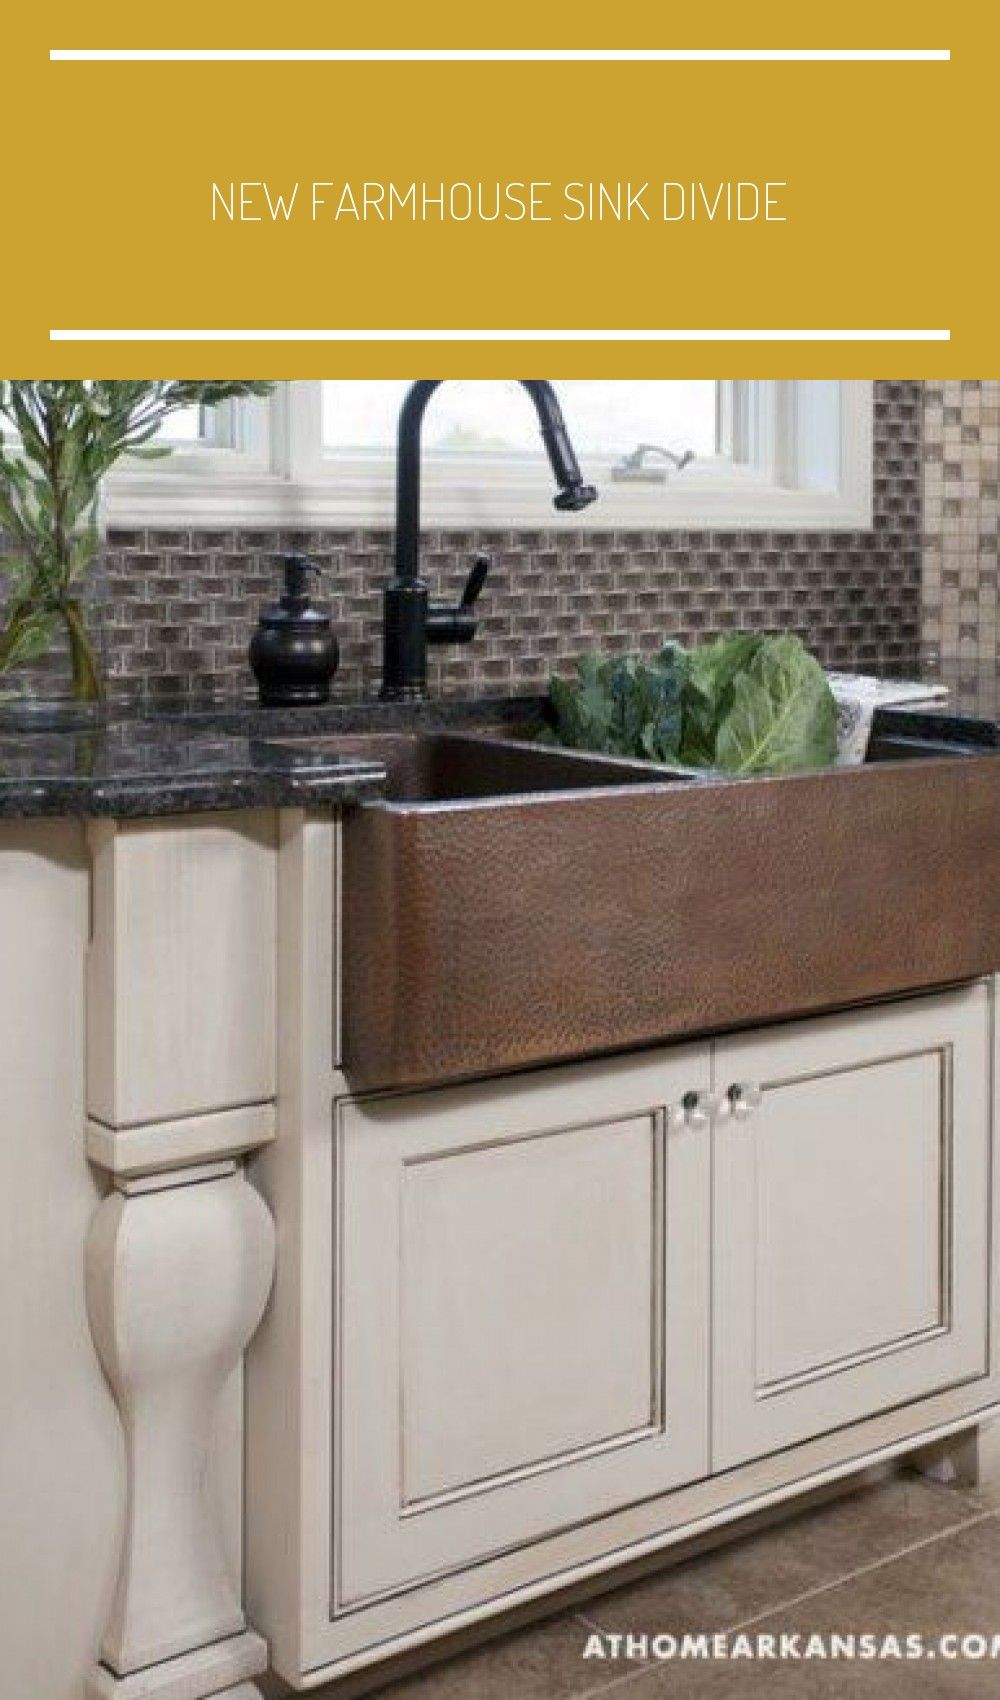 New Farmhouse Sink Divided Cabinets 32 Ideas Cabinets Divided Farmhouse Id Bestfarmhousesink Cabinets Div Farmhouse Sink Sink Ikea Farmhouse Sink